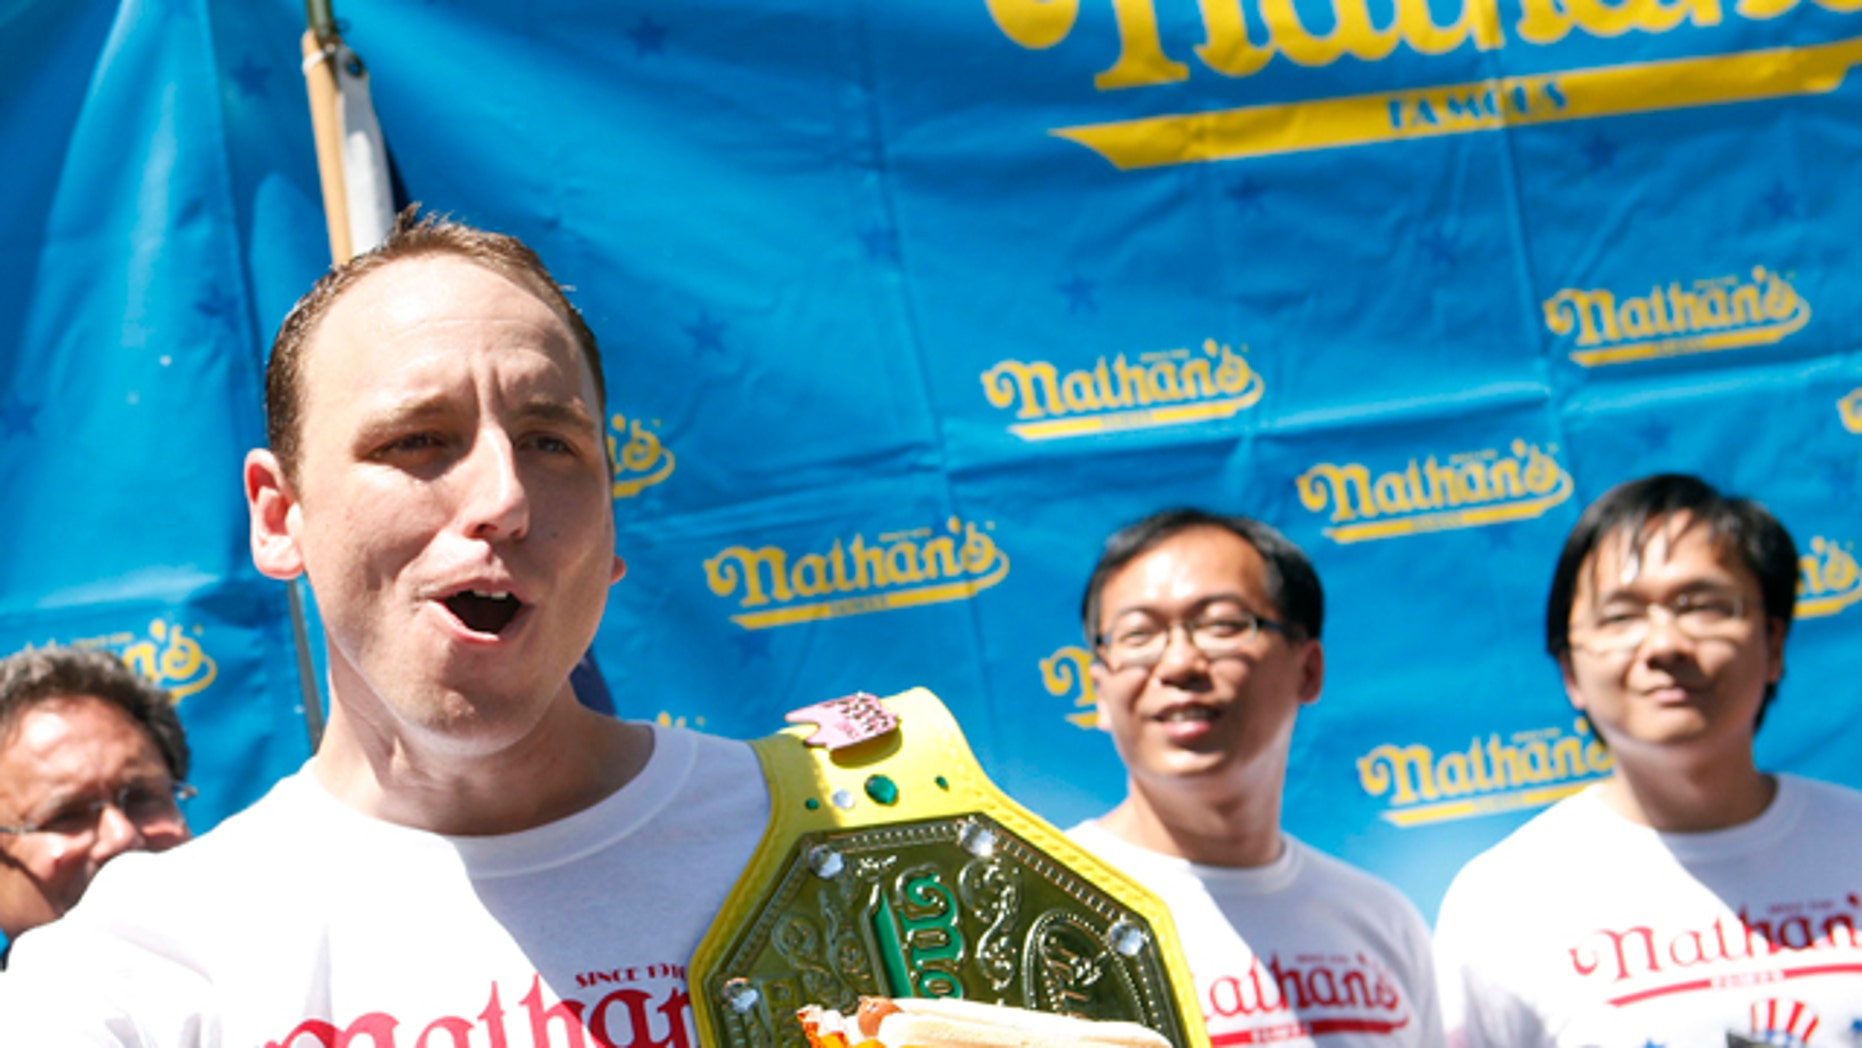 Joey Chestnut pictured days before winning the Nathan's Famous Fourth of July Hot Dog Eating Contest.